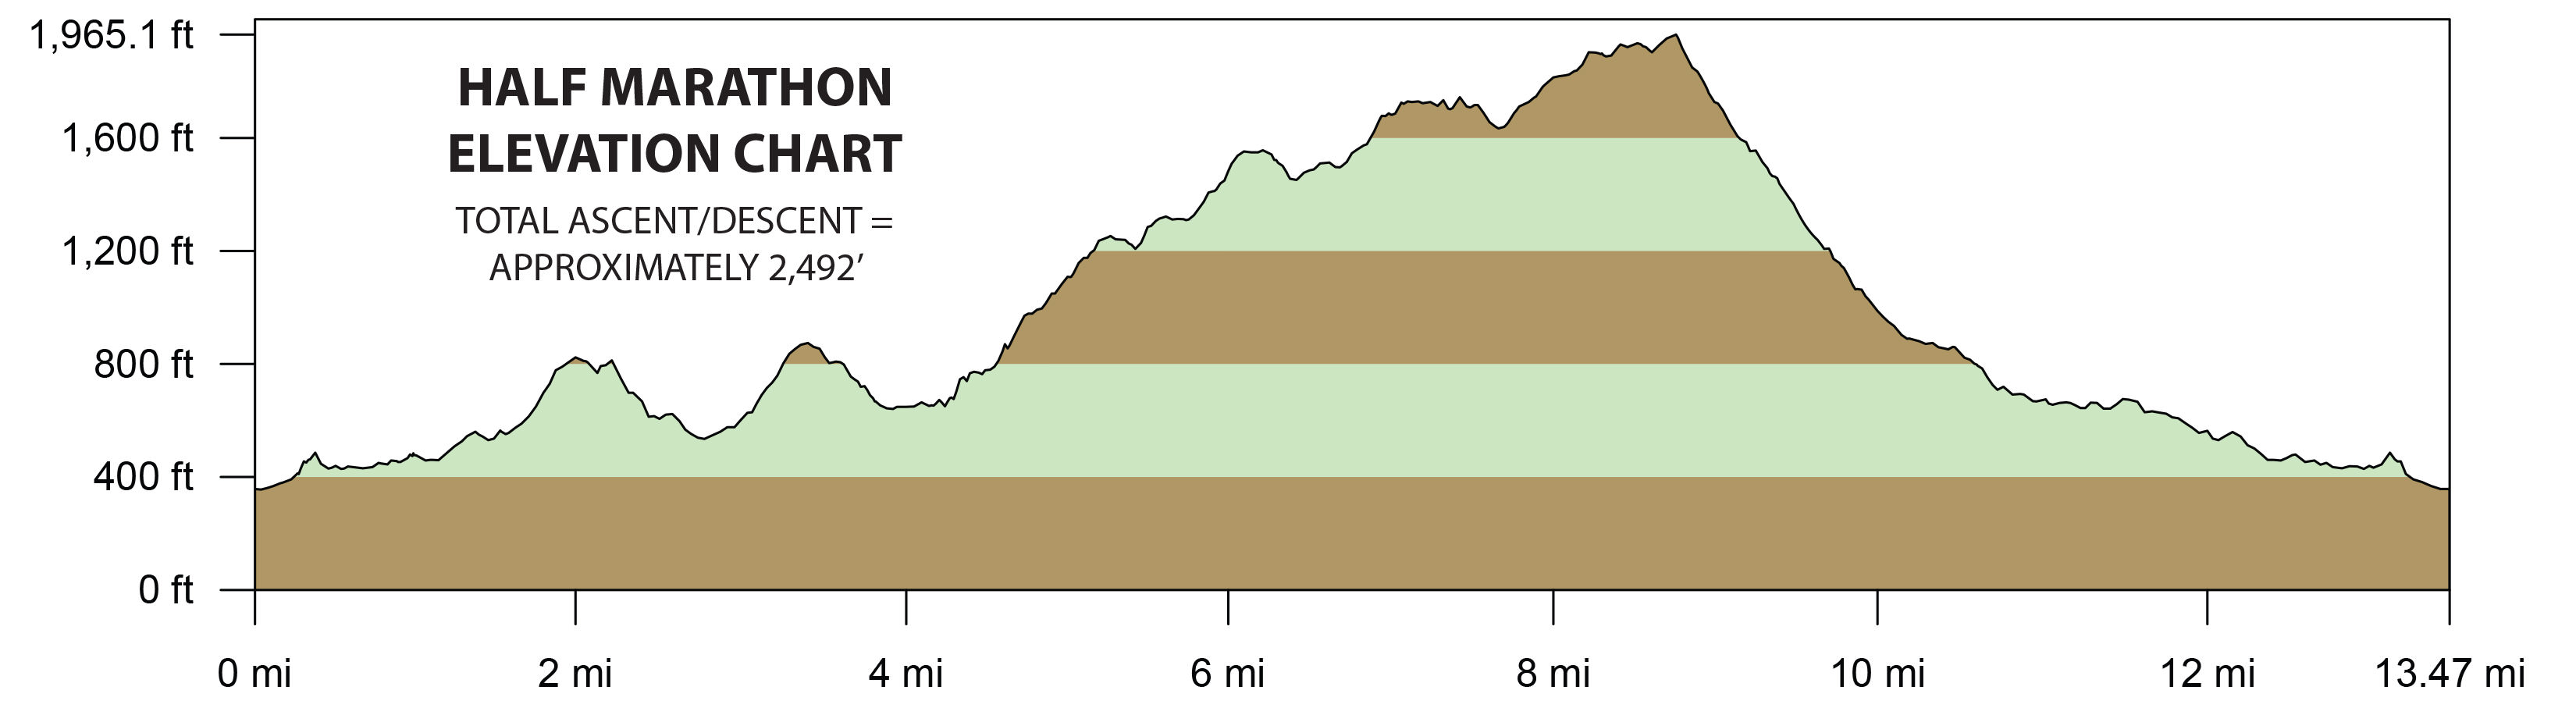 DiabloHalf elevation chart